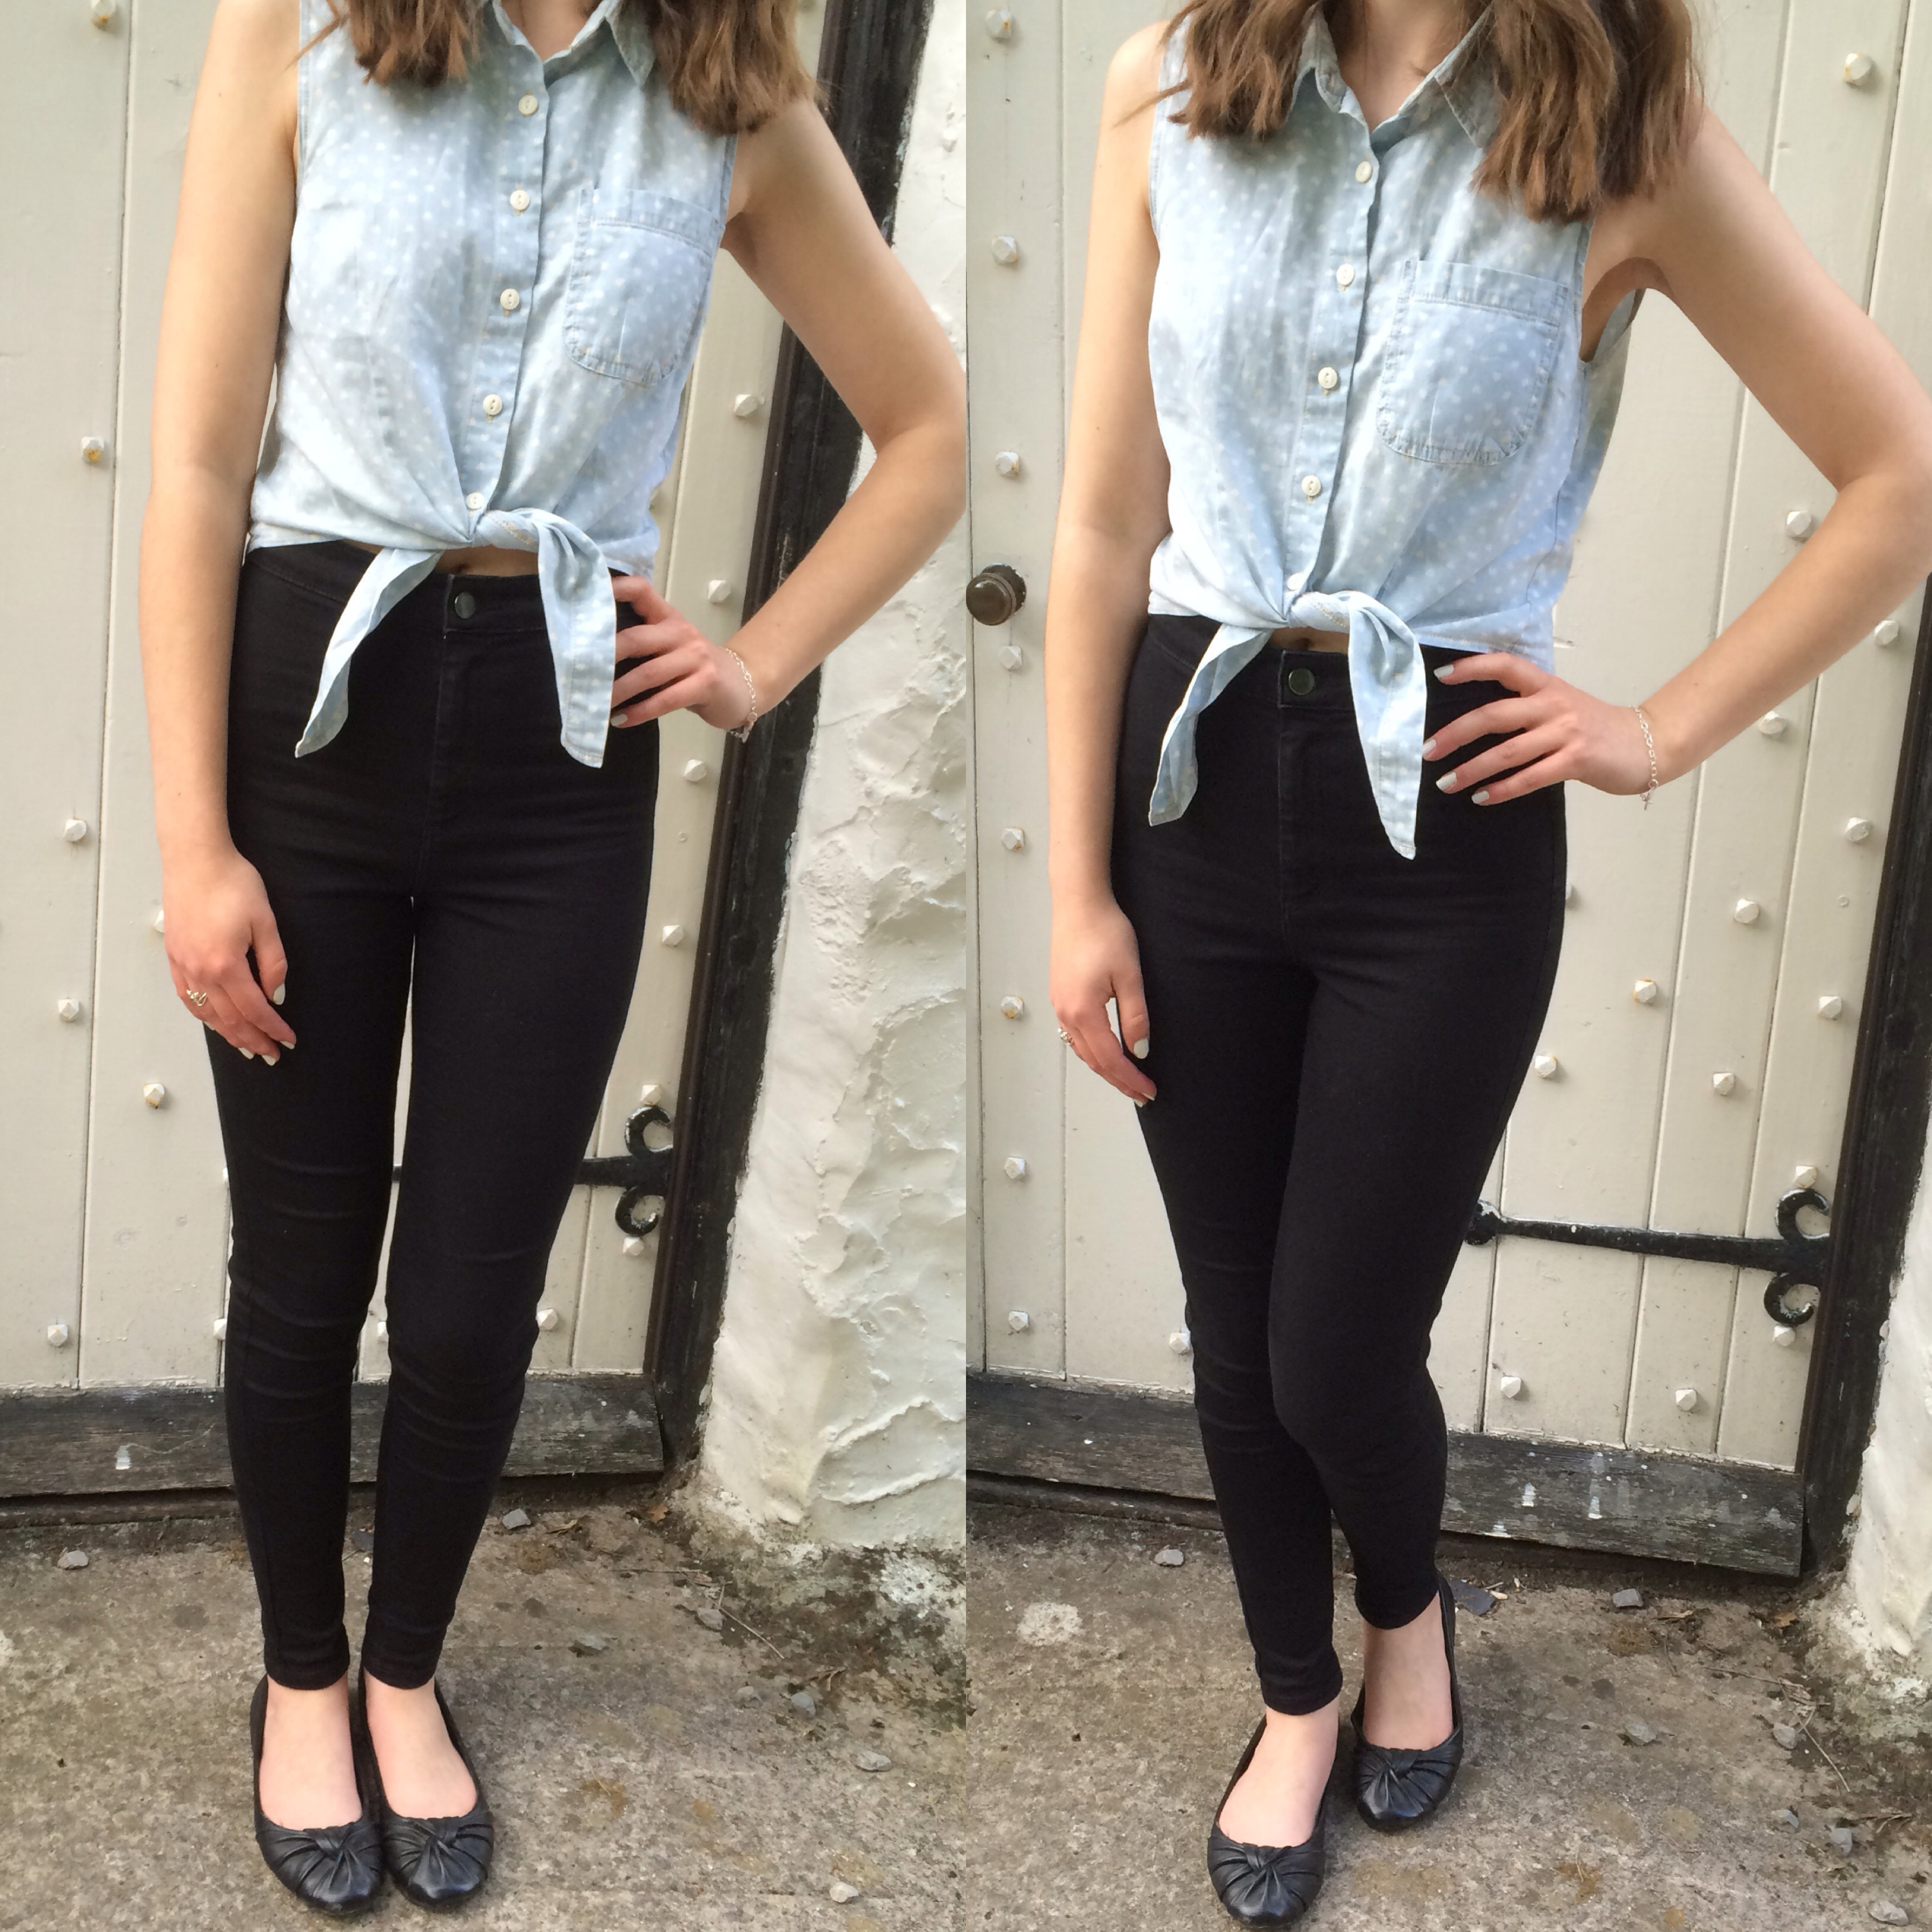 Two photos of my outfit - I'm wearing black skinny jeans, a cropped blue top with white polka dots and a tie at the front with a pair of black flat shoes